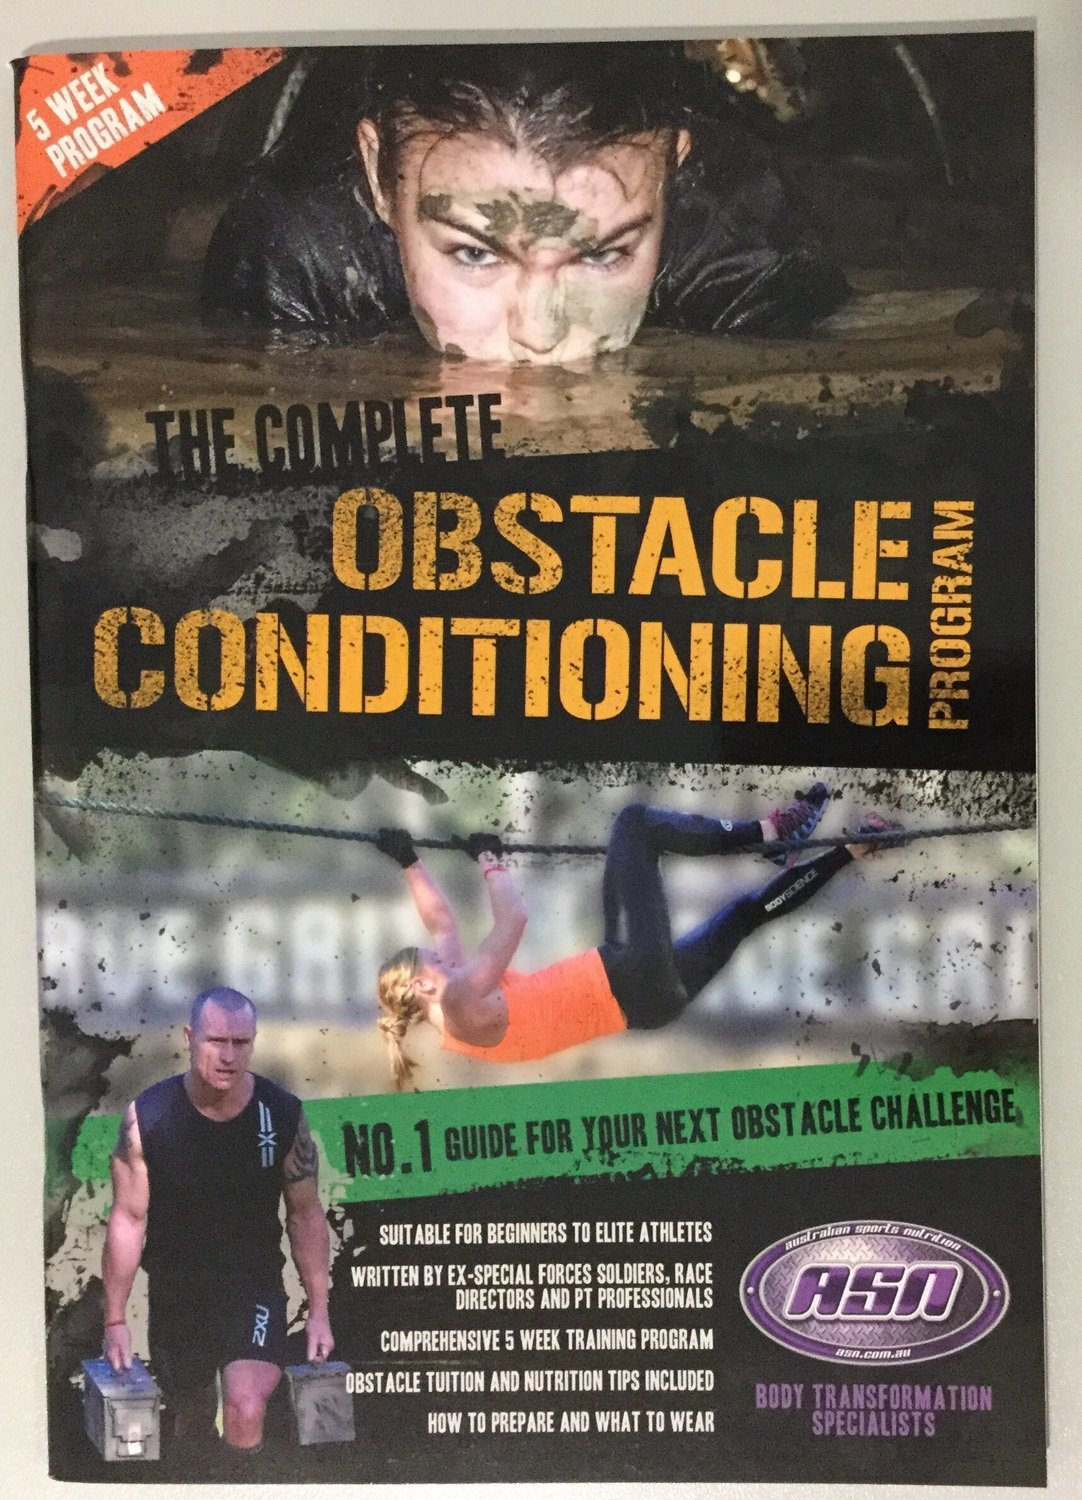 The Complete Obstacle Conditioning Program